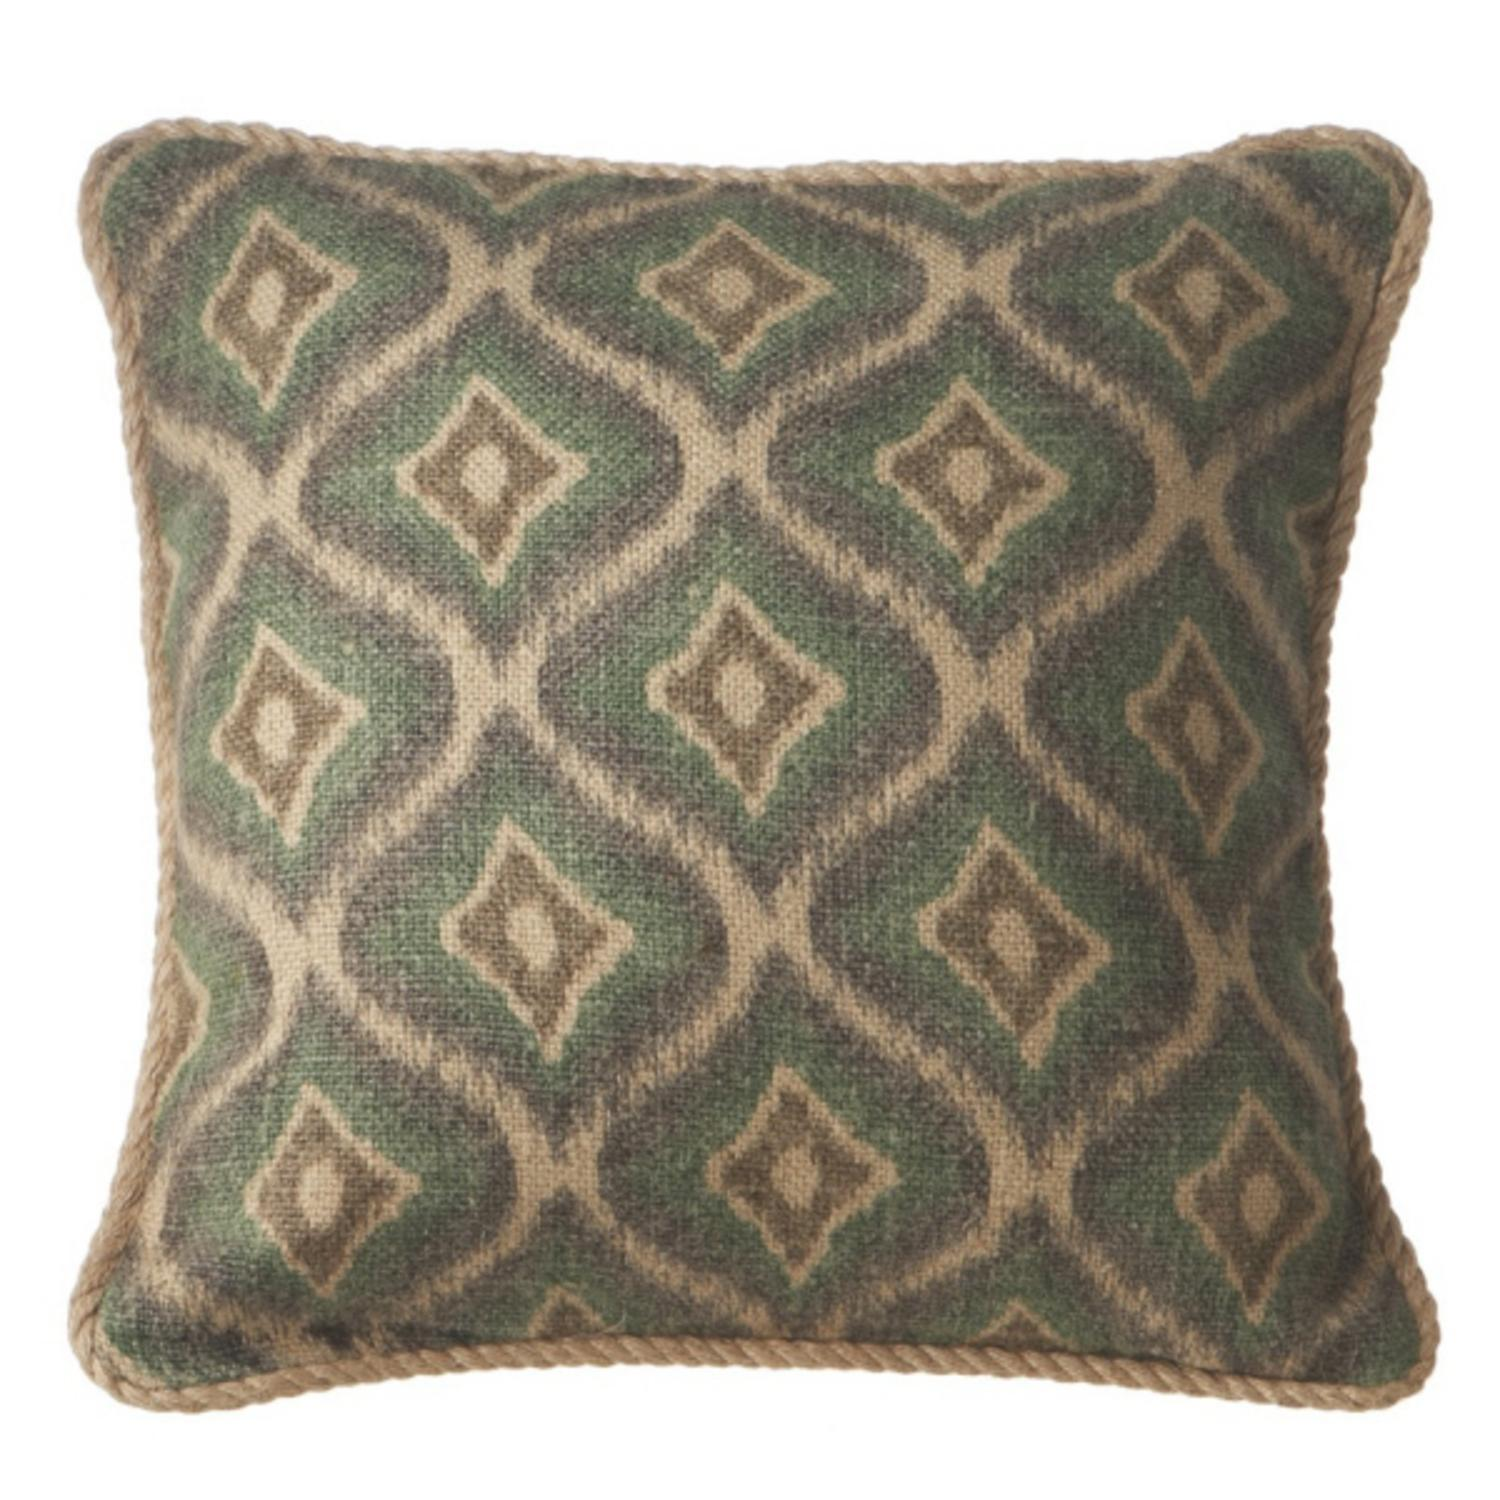 18 Botanic Beauty Decorative Geometric Muted Green Square Throw Pillow With Twisted Trim